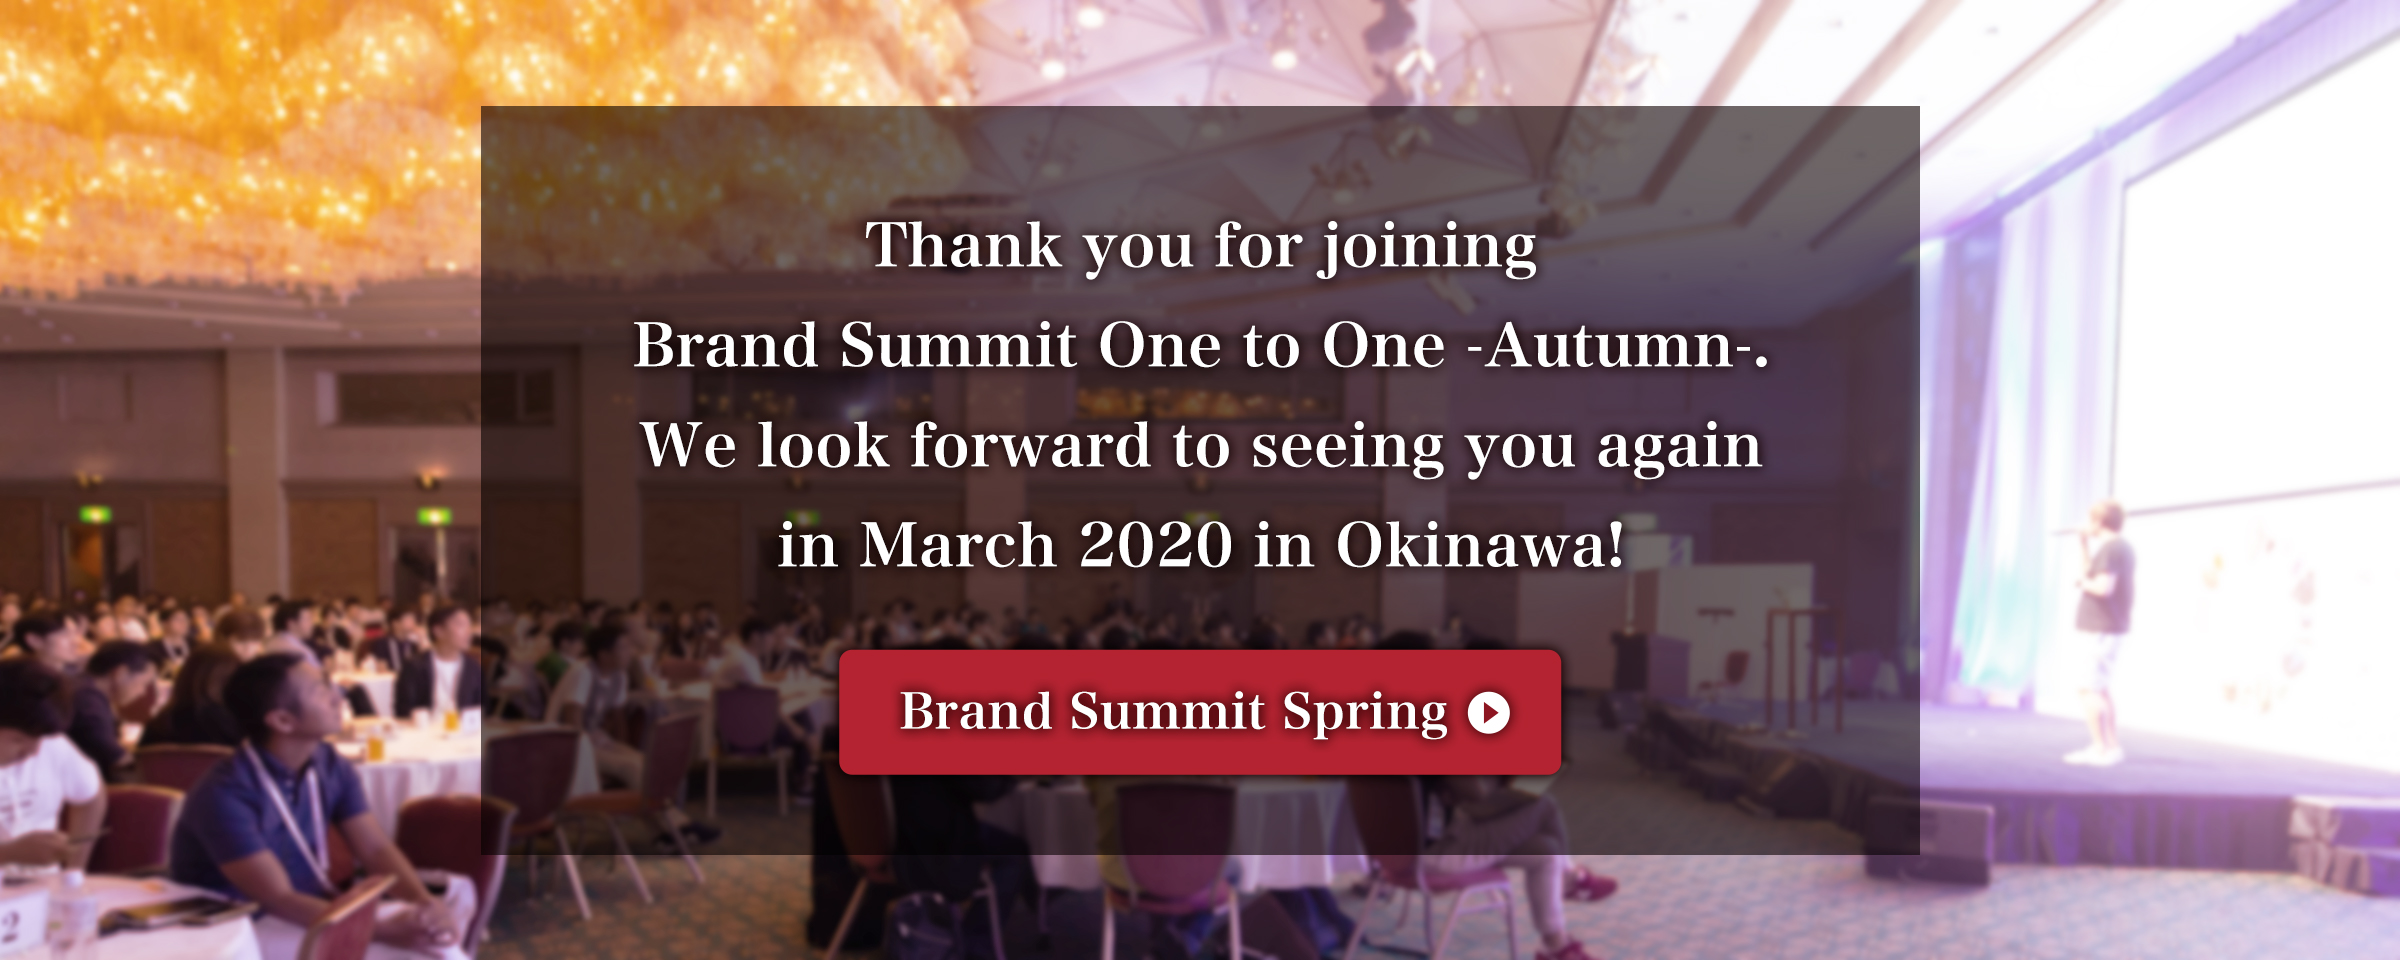 Thank you for joining Brand Summit Autumn.